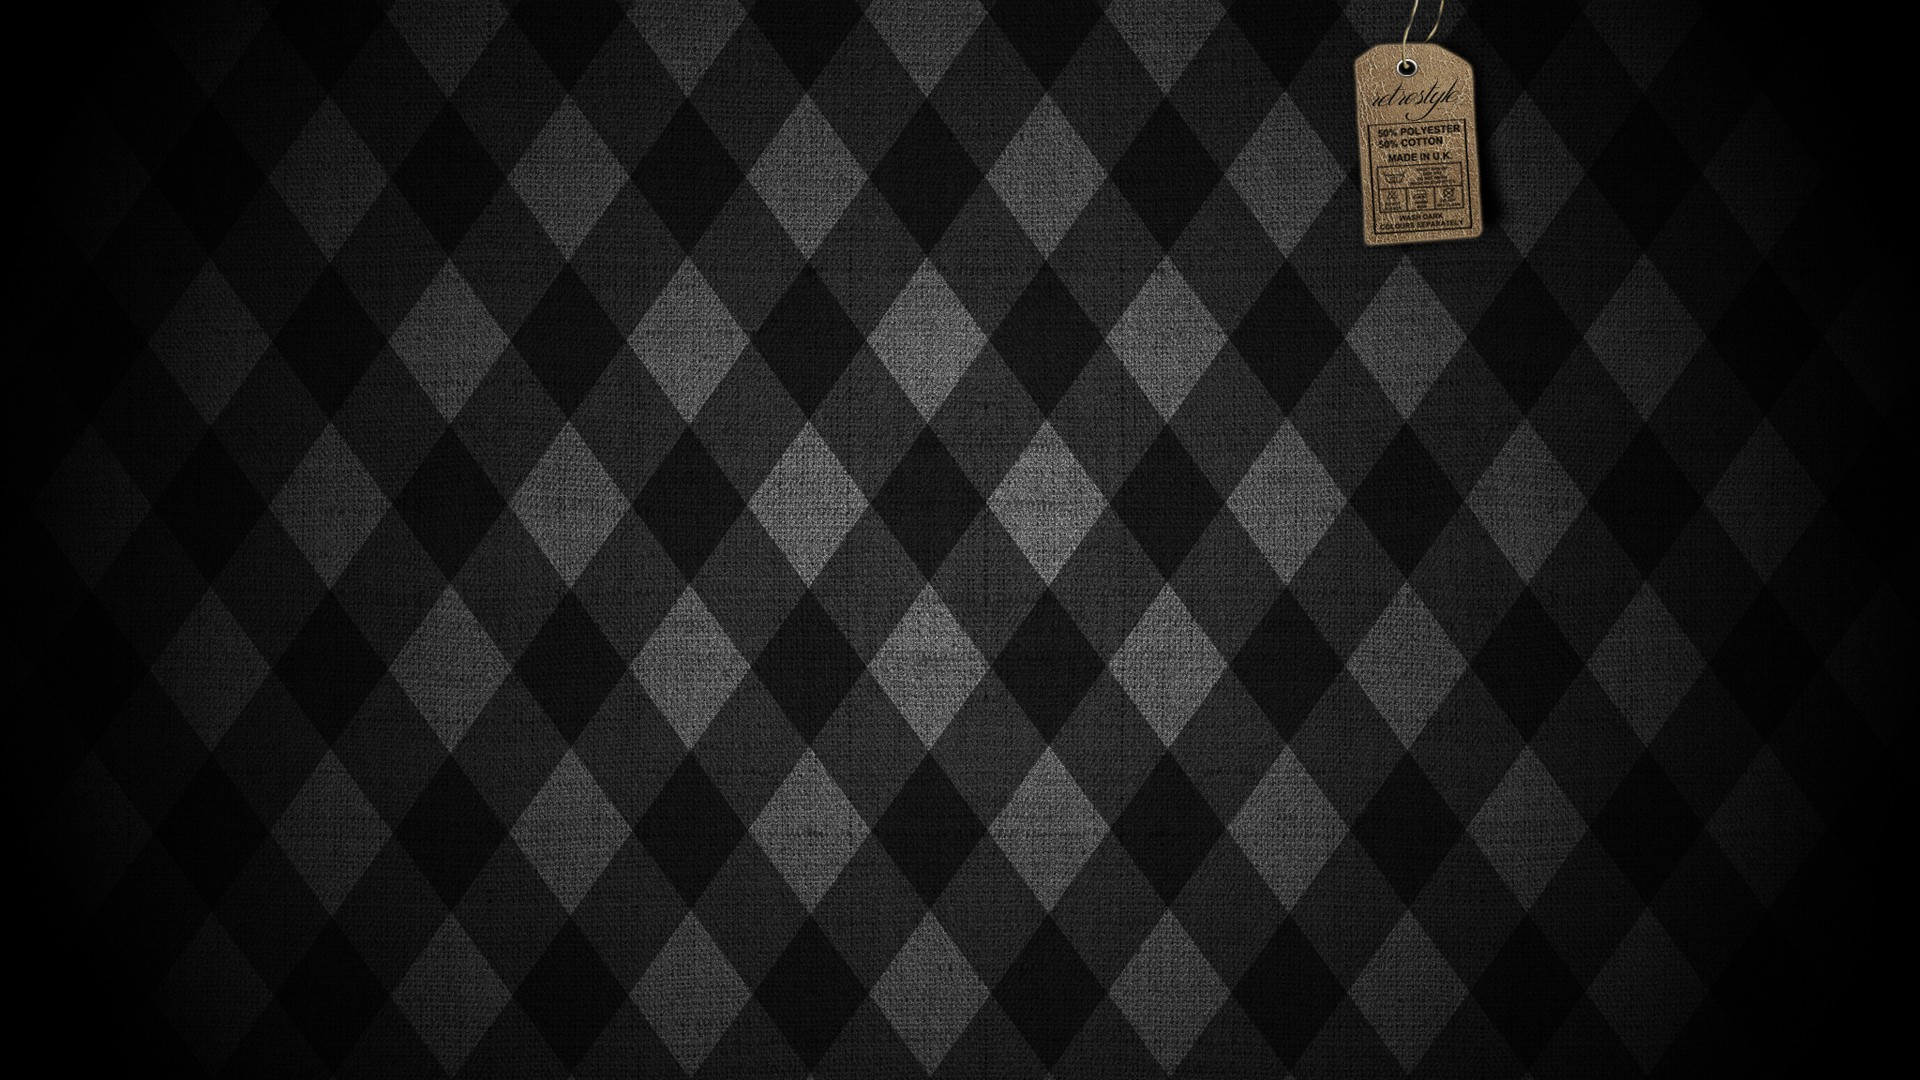 Retro Inspired Wallpaper Wallpapersafari